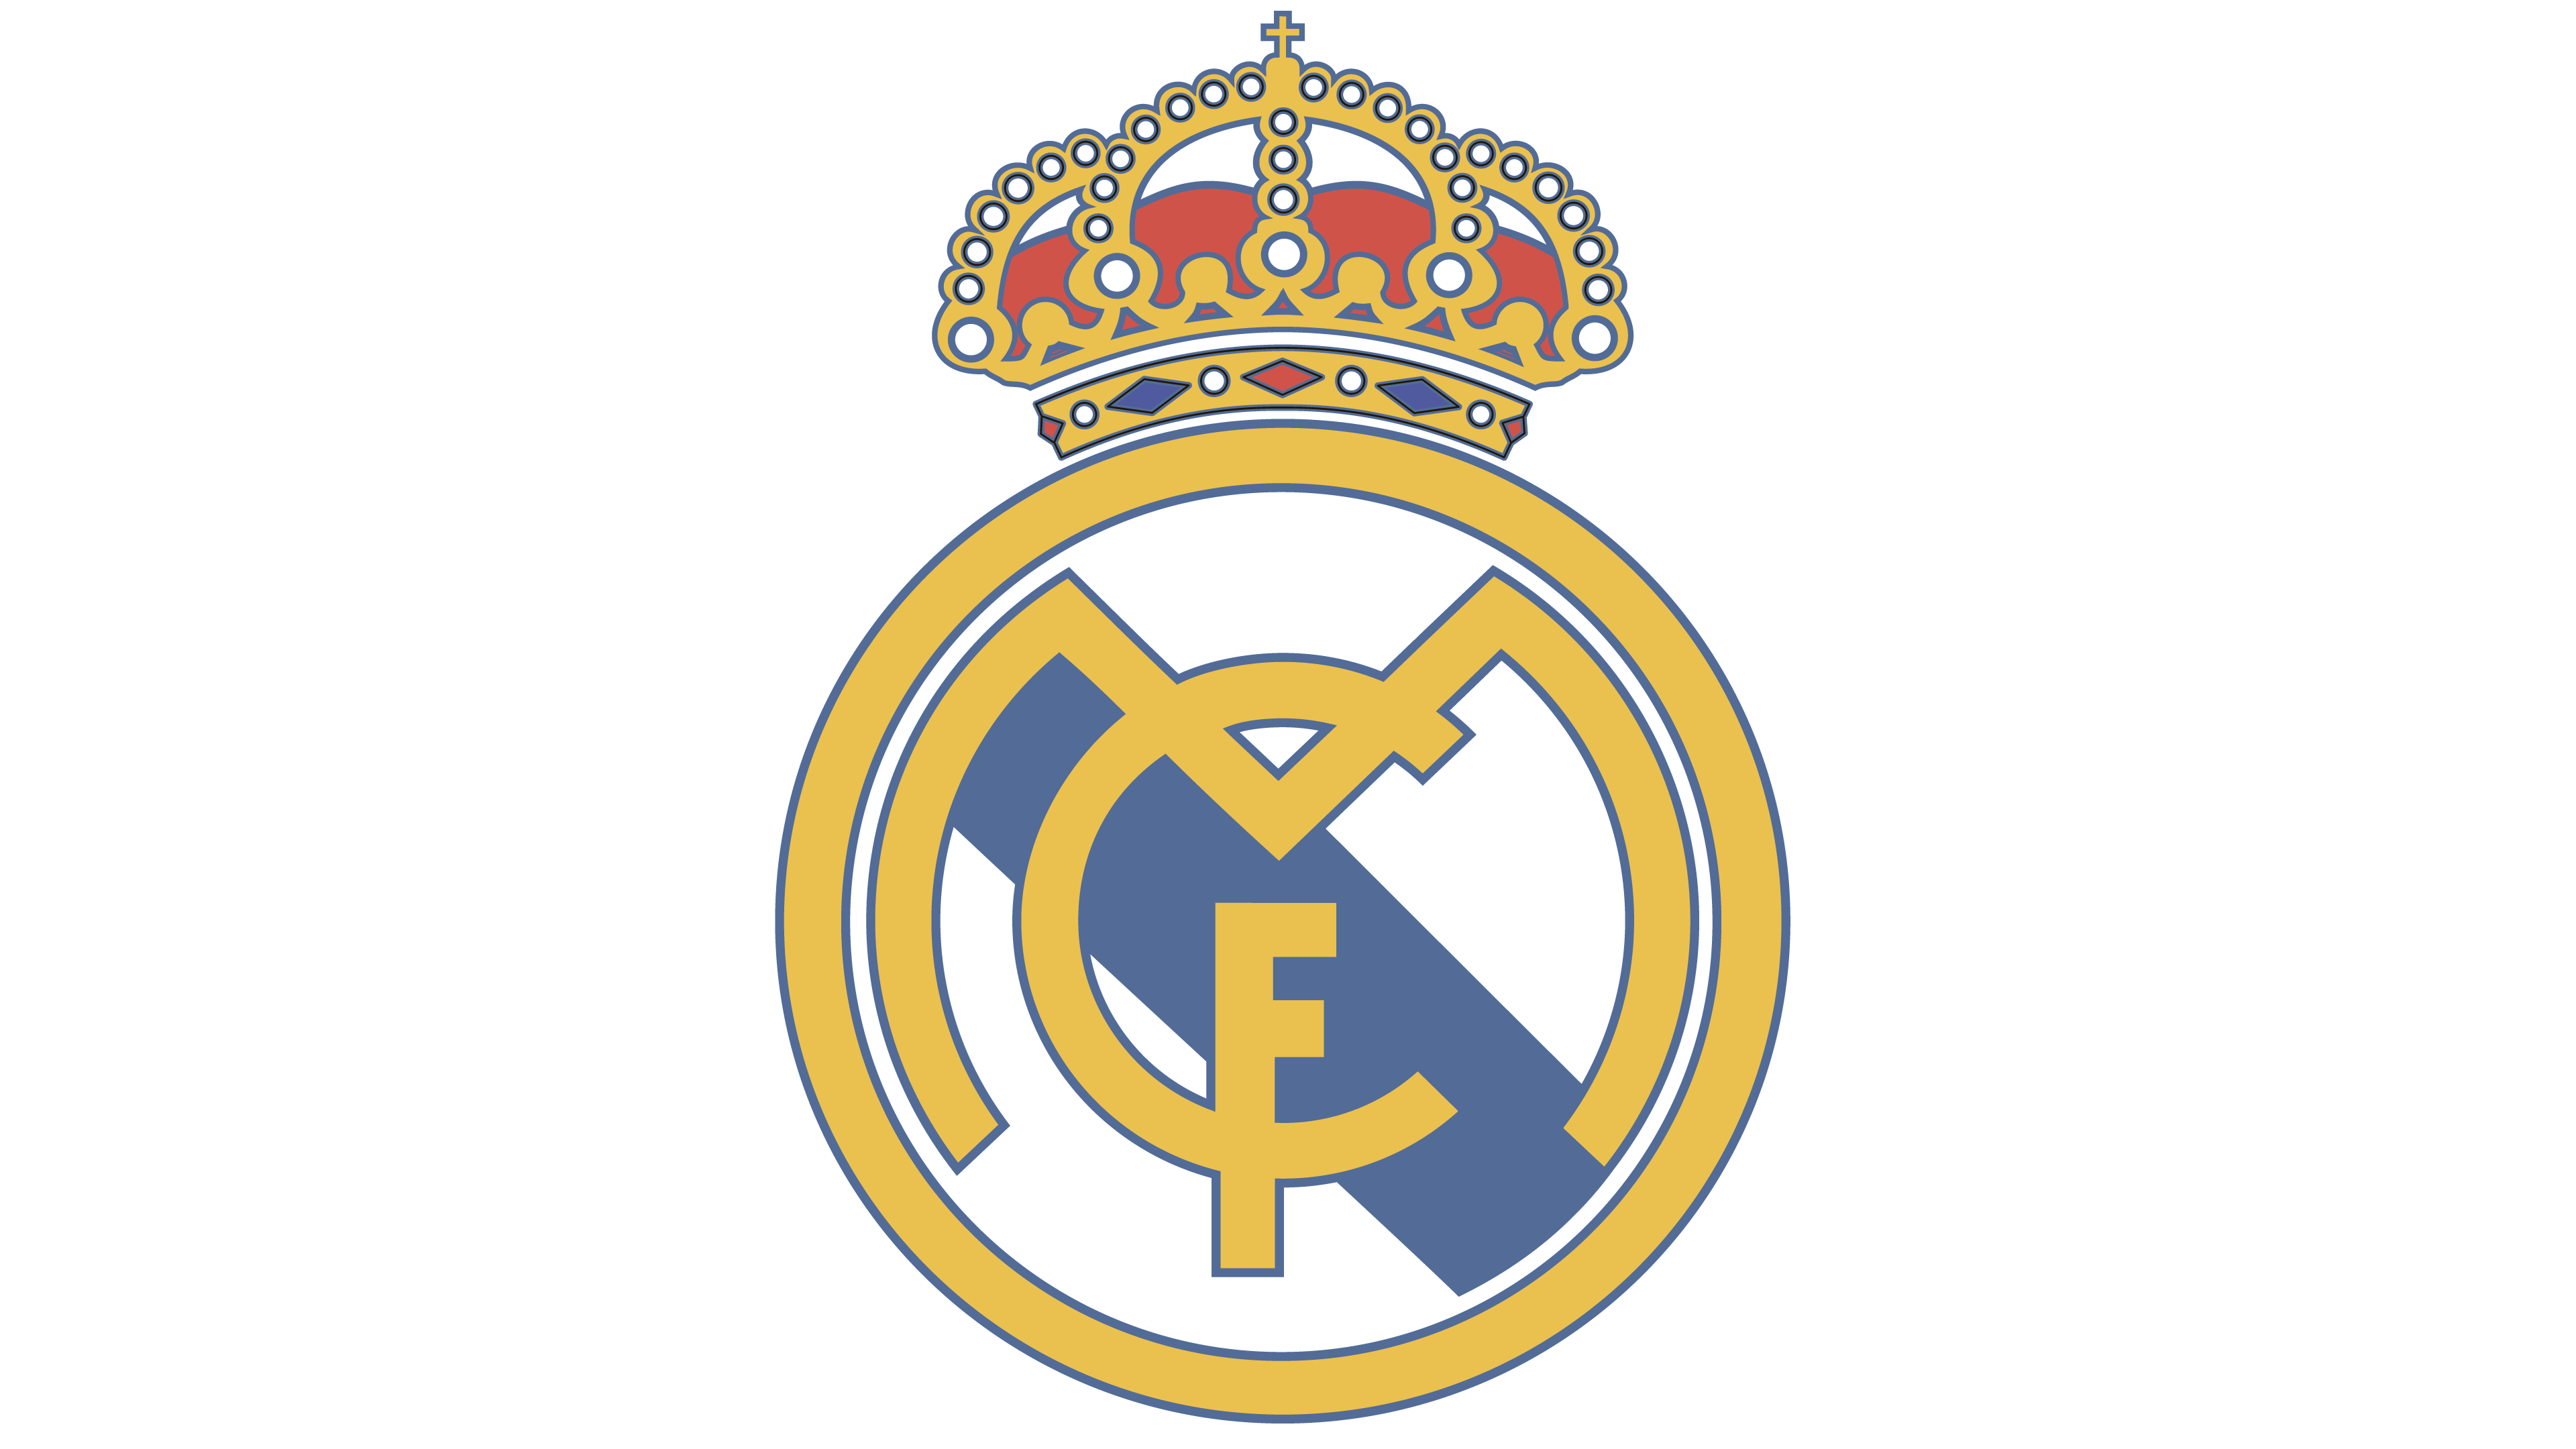 The real real logo clipart banner free library Real Madrid logo - Interesting History of the Team Name and ... banner free library